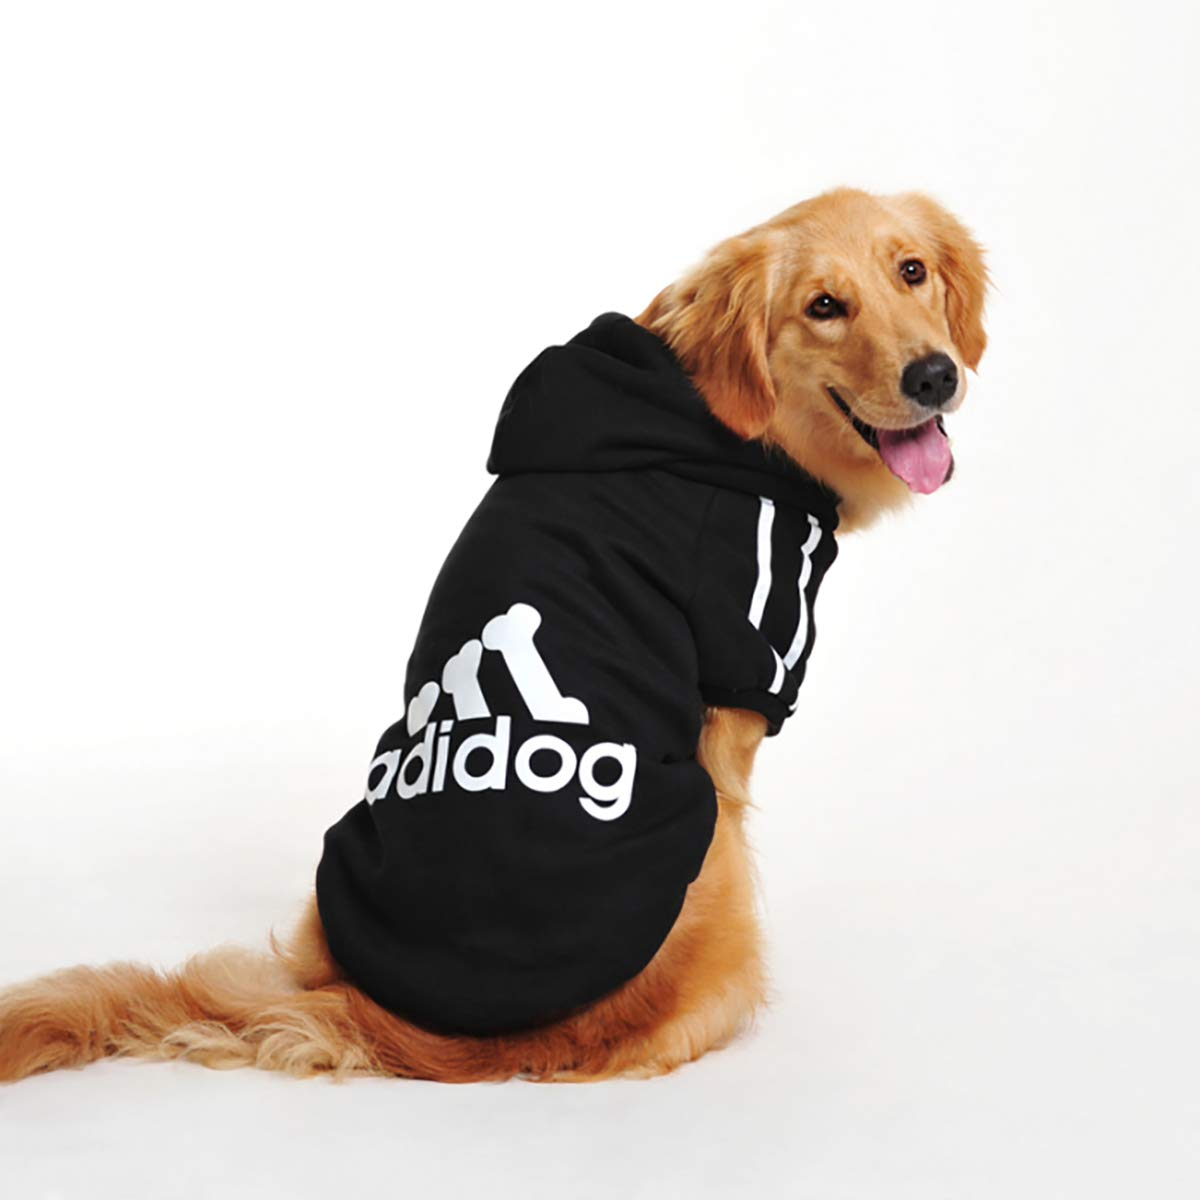 BLACK 6XL BLACK 6XL InnoPet Dog Clothes, Large Dog Adidog Hoodie Costume Outfits Sweater Dog Winter Coat Warm Sweatshirt Winter Jacket Dog Apparel for Cold Weather